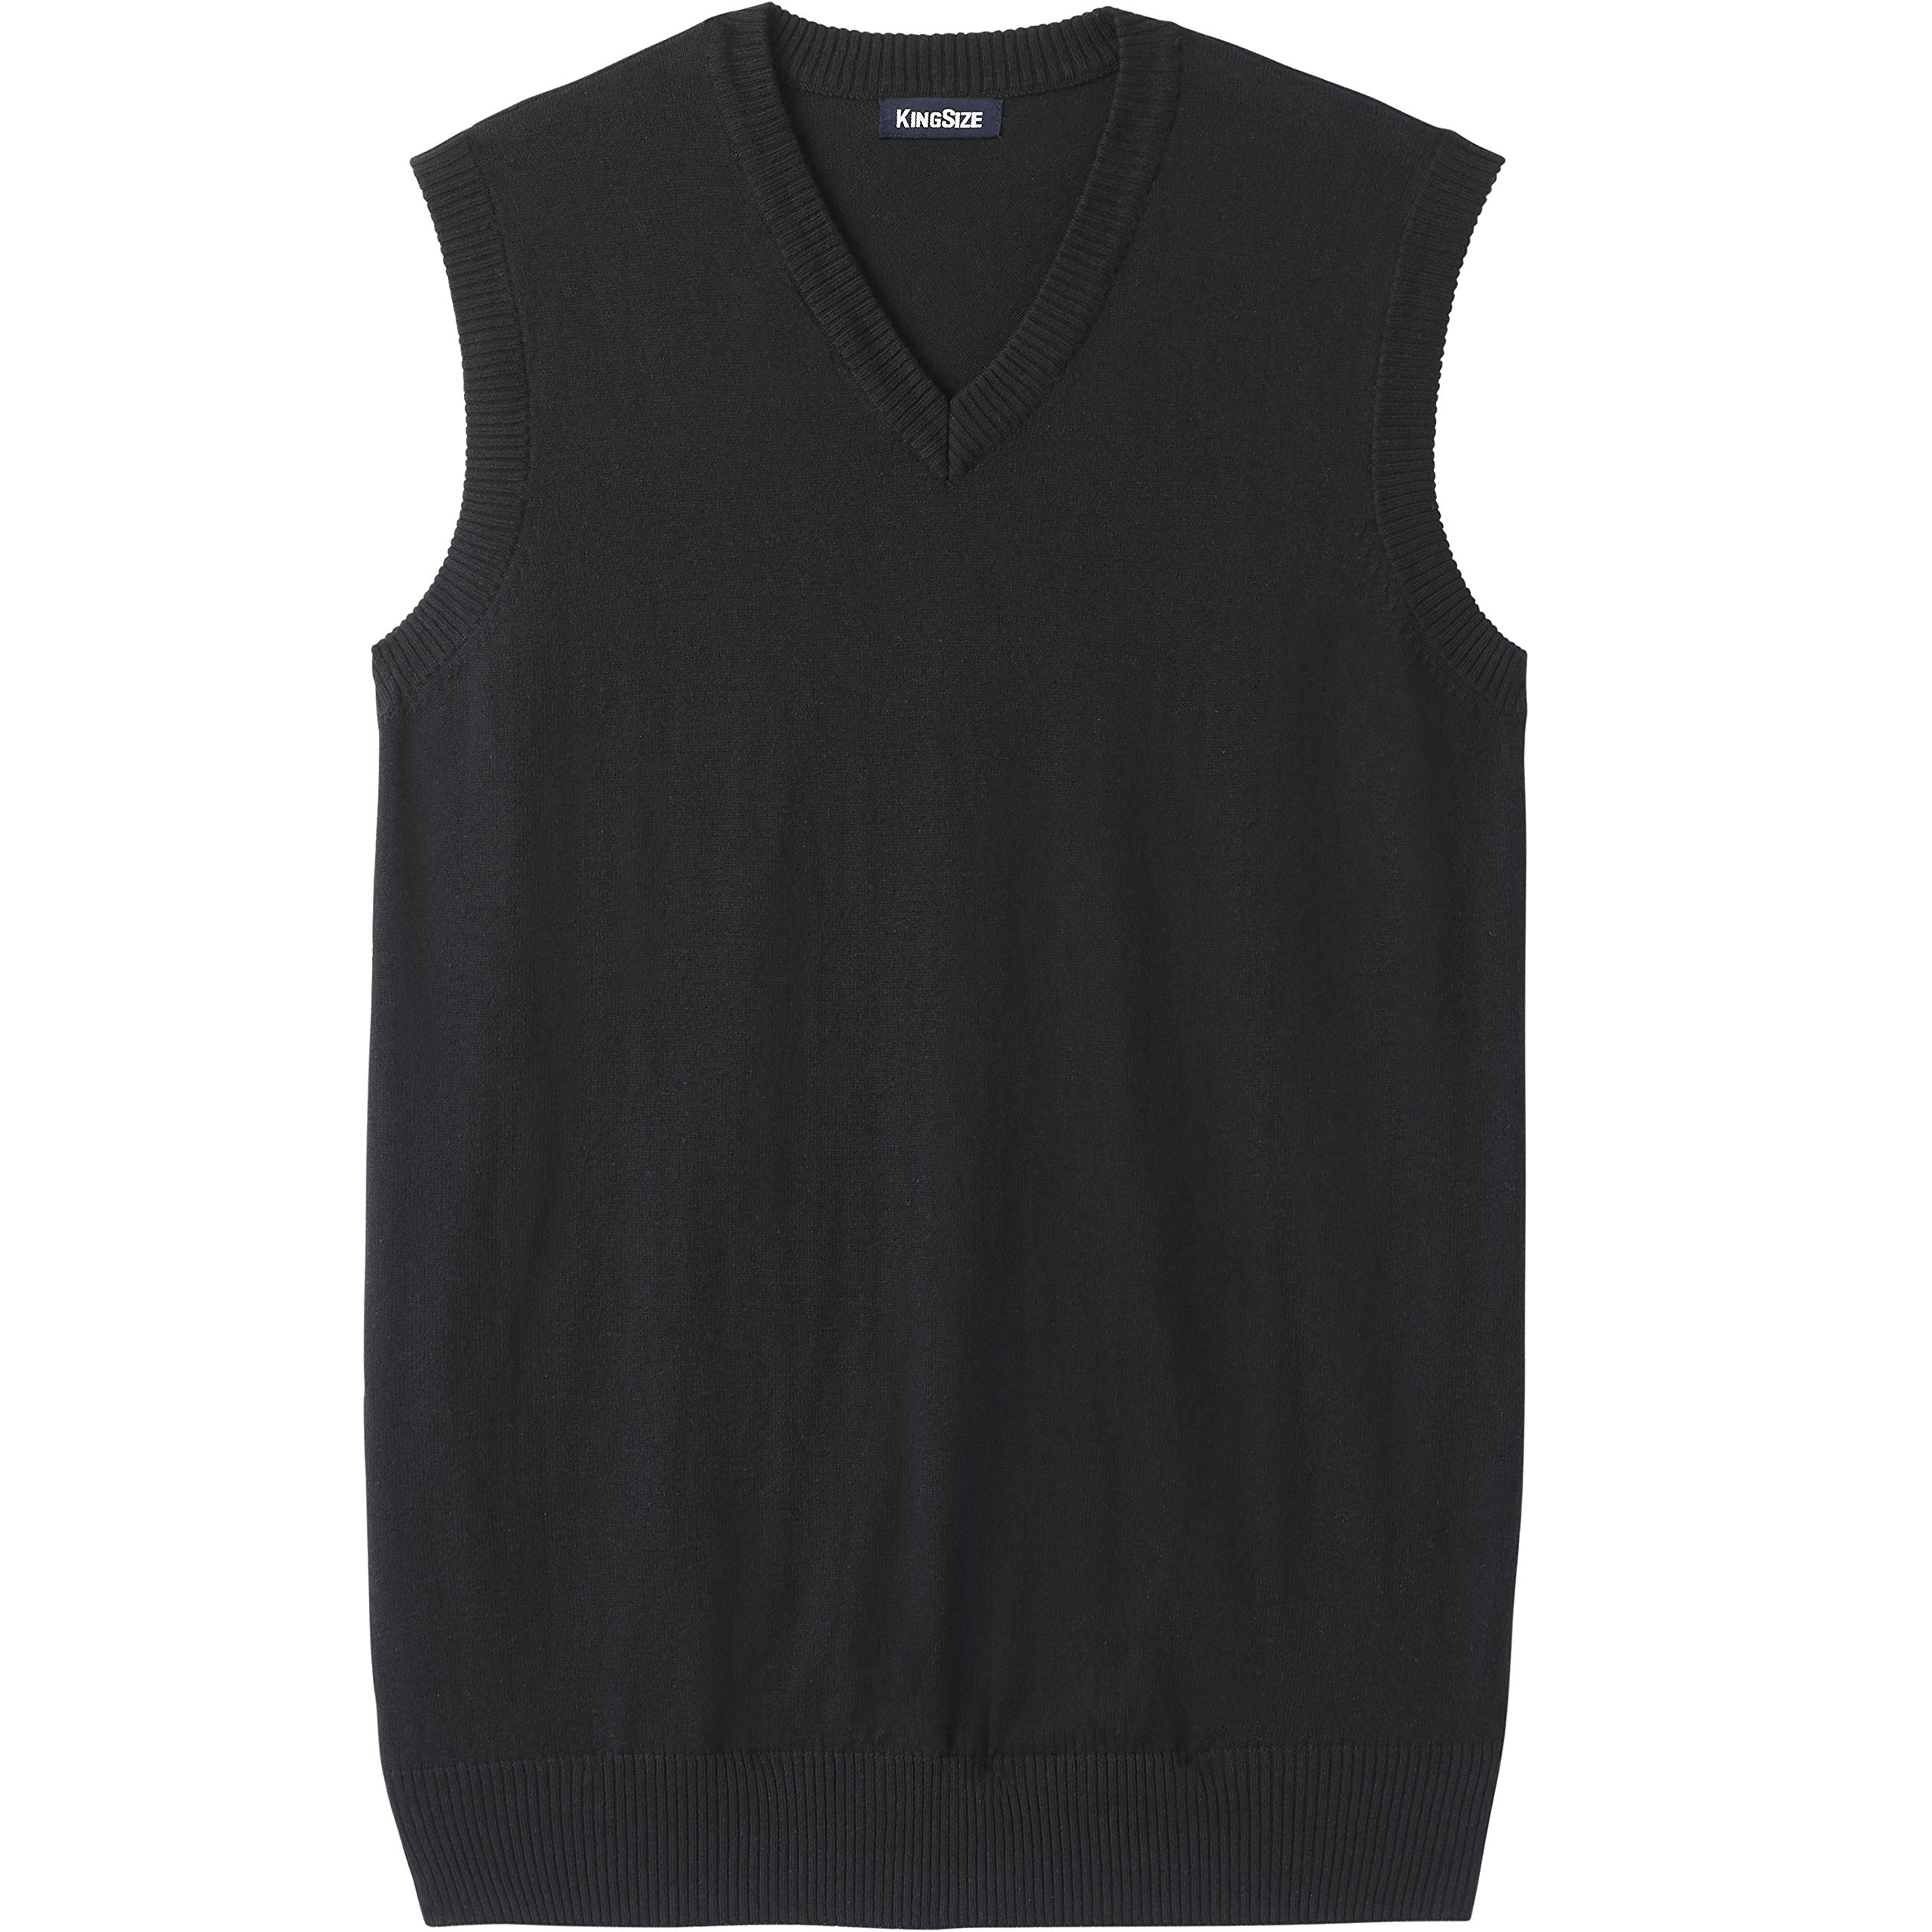 KingSize Men's Big & Tall Lightweight V-Neck Sweater Vest, Black Tall-5XL by KingSize